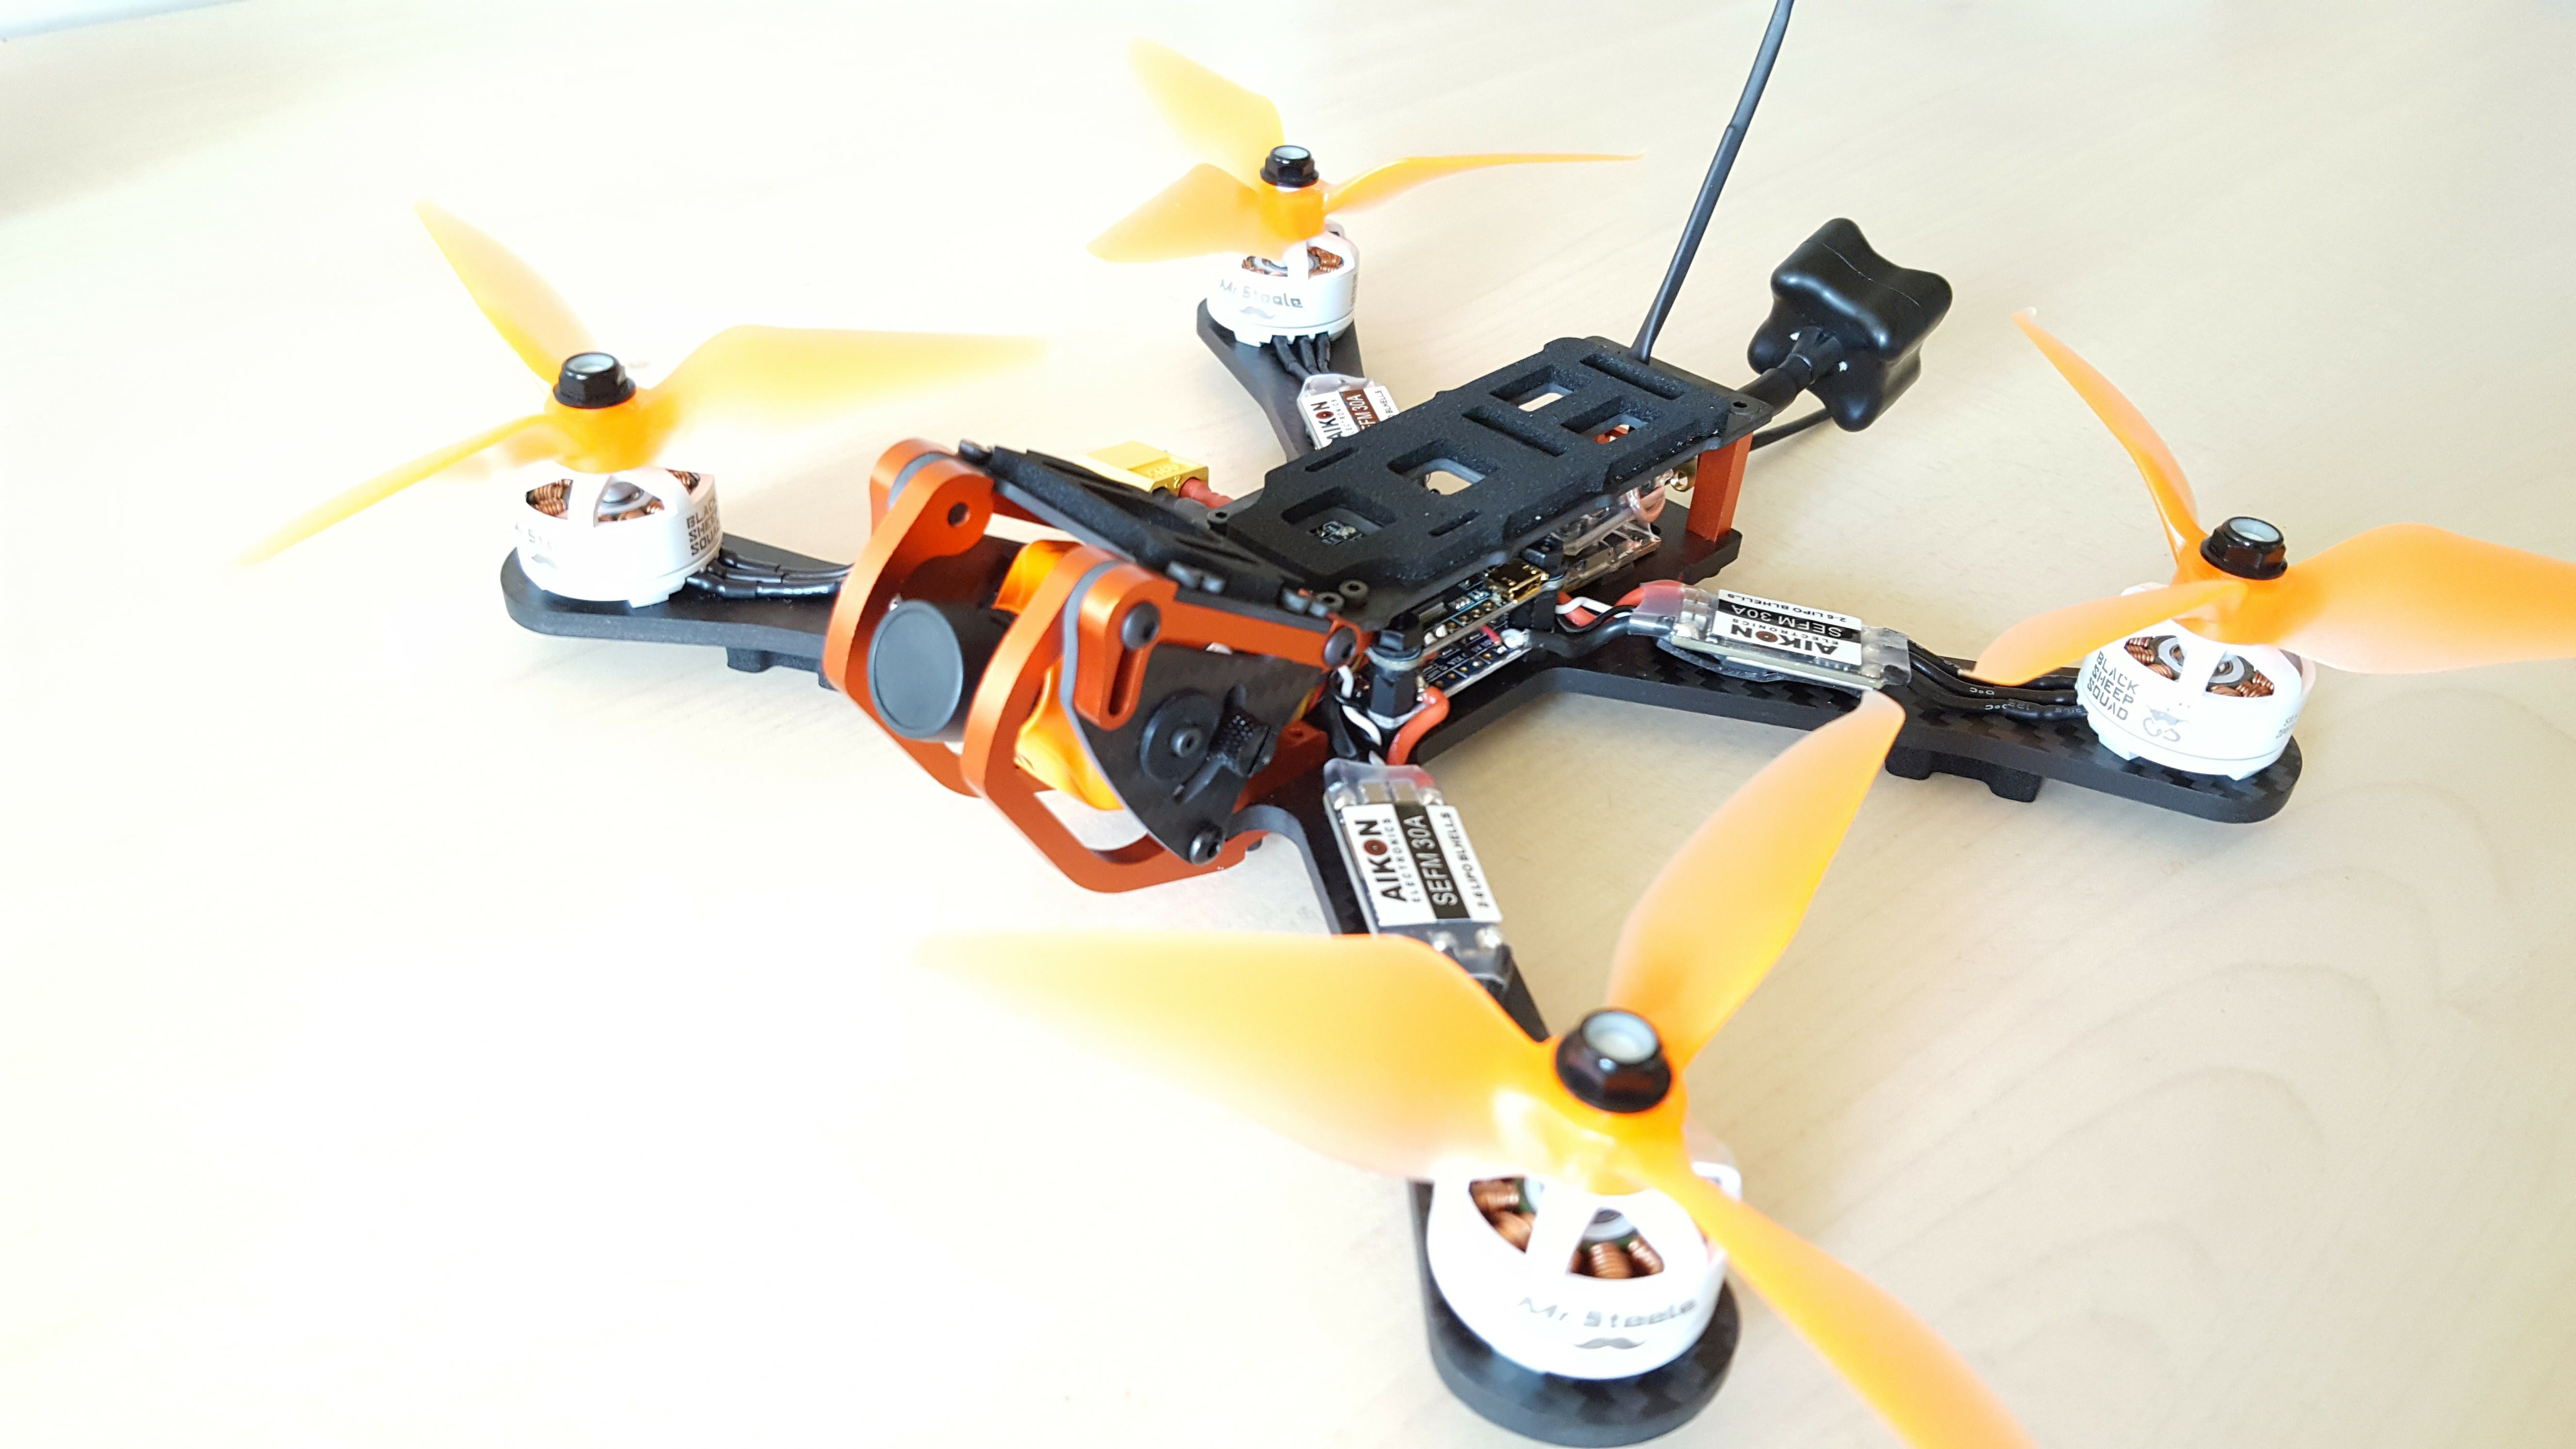 4 rotor drone with 3004 on What Are The Physical Aerodynamic Implications Of Designing A Prop Guard For Mul as well Tarot X4 Quadcopter Frame Set in addition Dys F4 Fc F30a F20a 4in1 Esc F4 Omnibus moreover Mini Drones besides Frame Kits c 267.